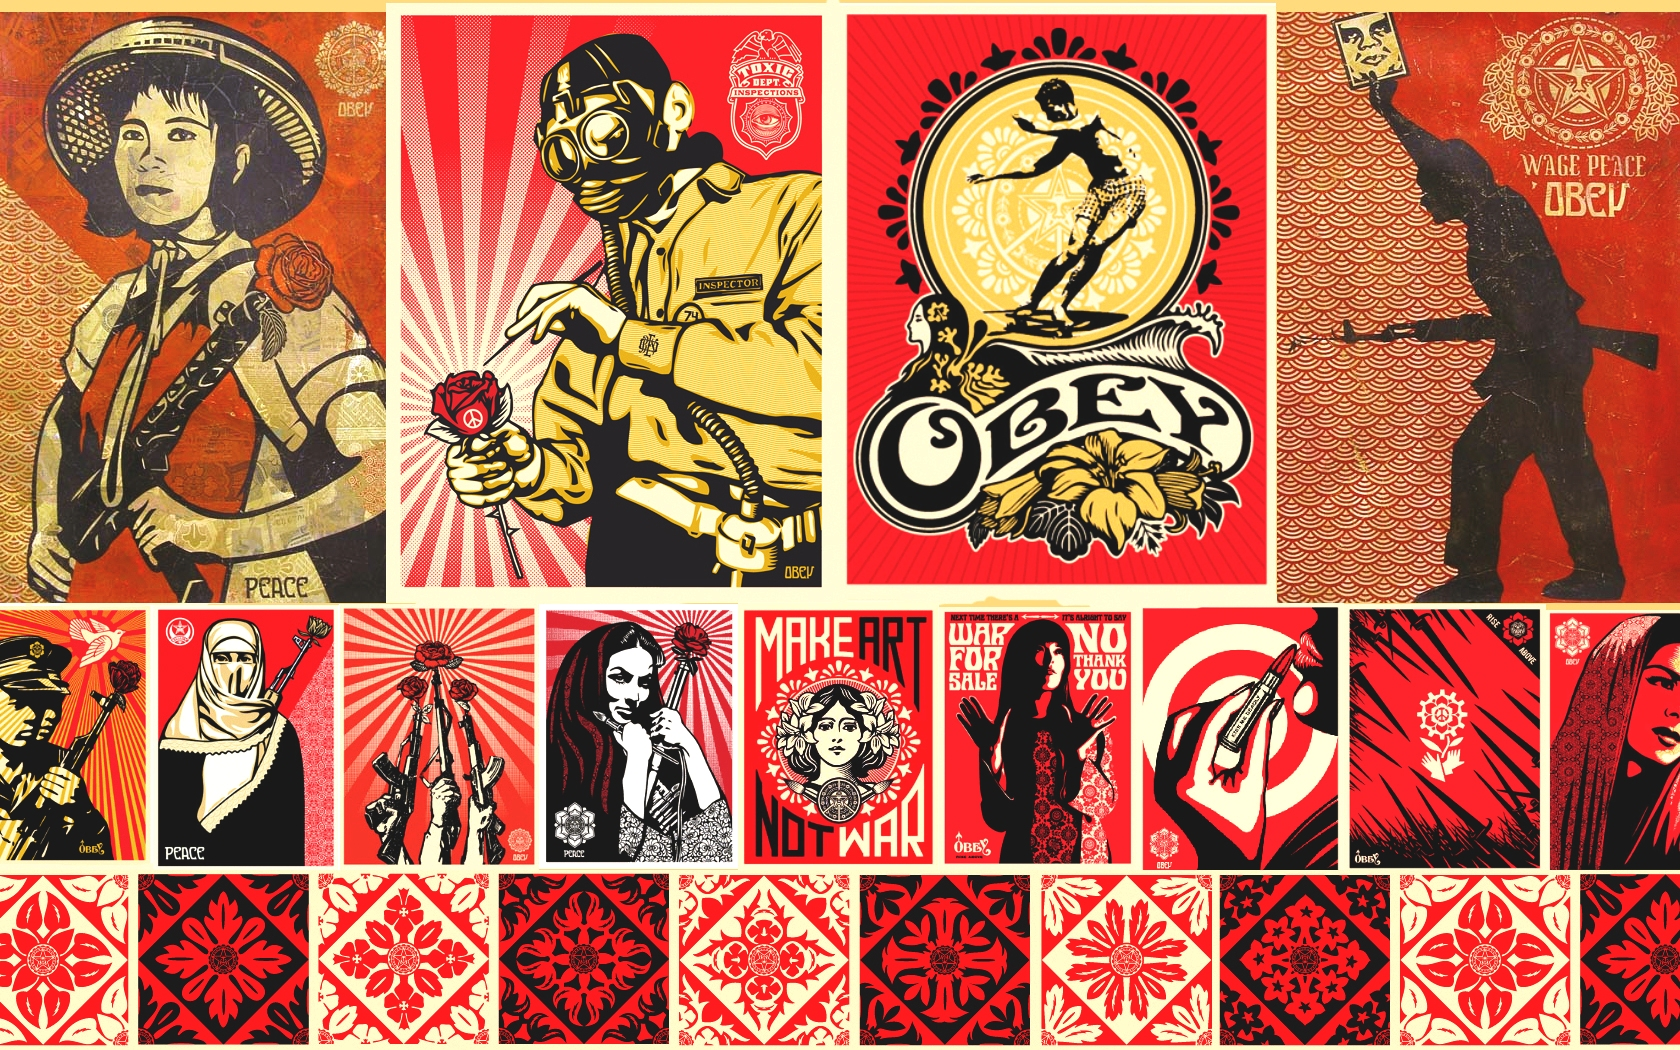 Download Obey Wallpaper 1680x1050 Wallpoper 409237 1680x1050